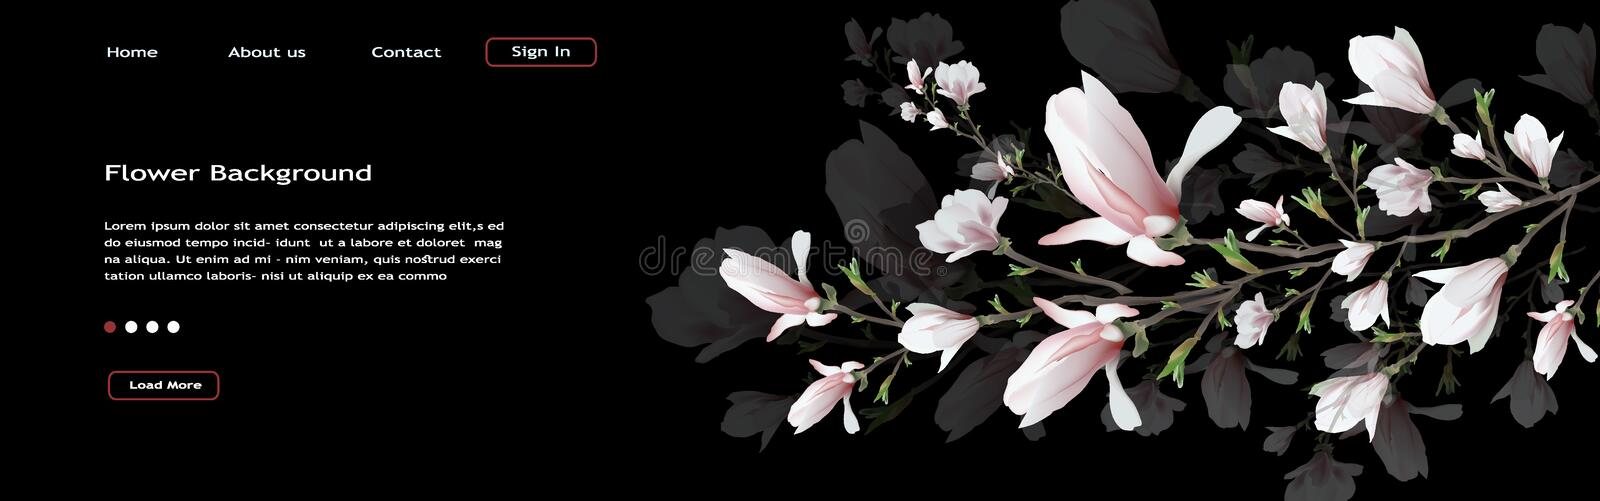 Realistic Magnolia flower isolated on black background. Magnolia branch is a symbol of spring, summer, femininity in the style of. Realistic flower, Magnolia stock illustration